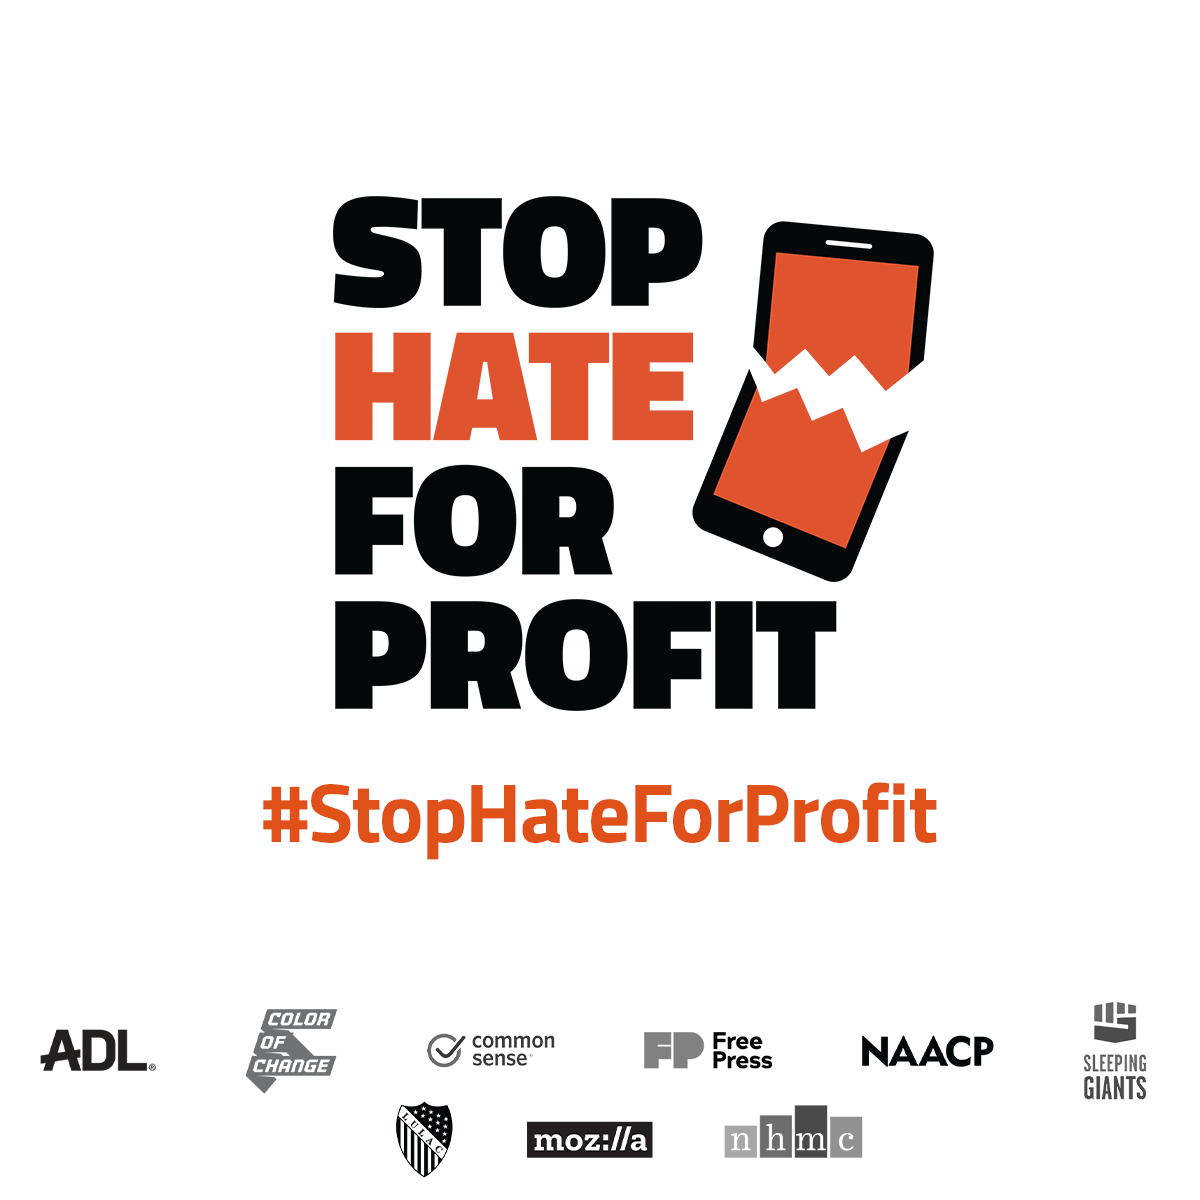 EXPLORE LAWRENCE JOINS THE 'STOP HATE FOR PROFIT' CAMPAIGN